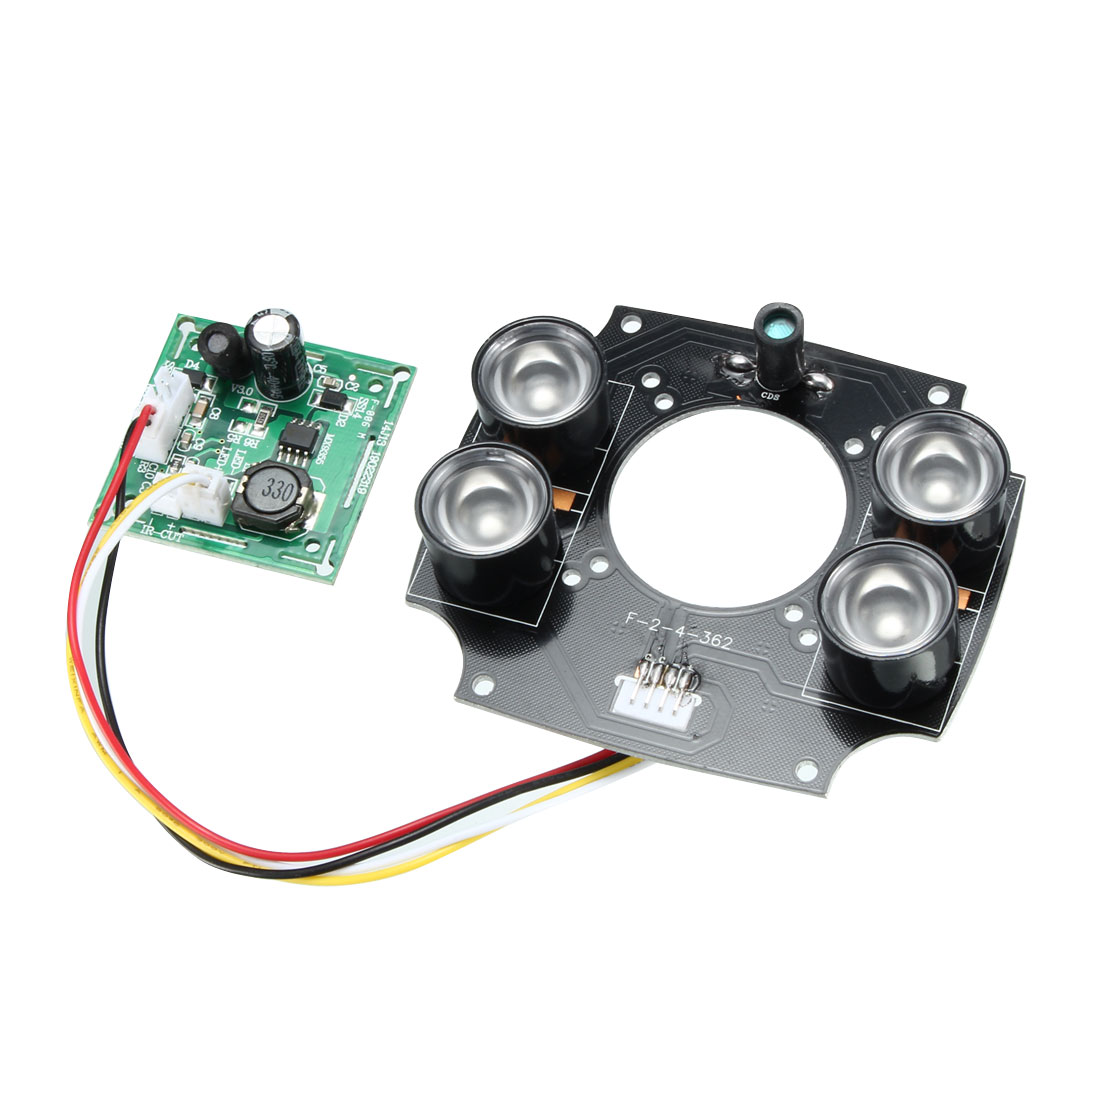 Array 4 High Power 32mm Lens Hole Infrared IR LED PCB Lamp Board Module For CCTV Camera